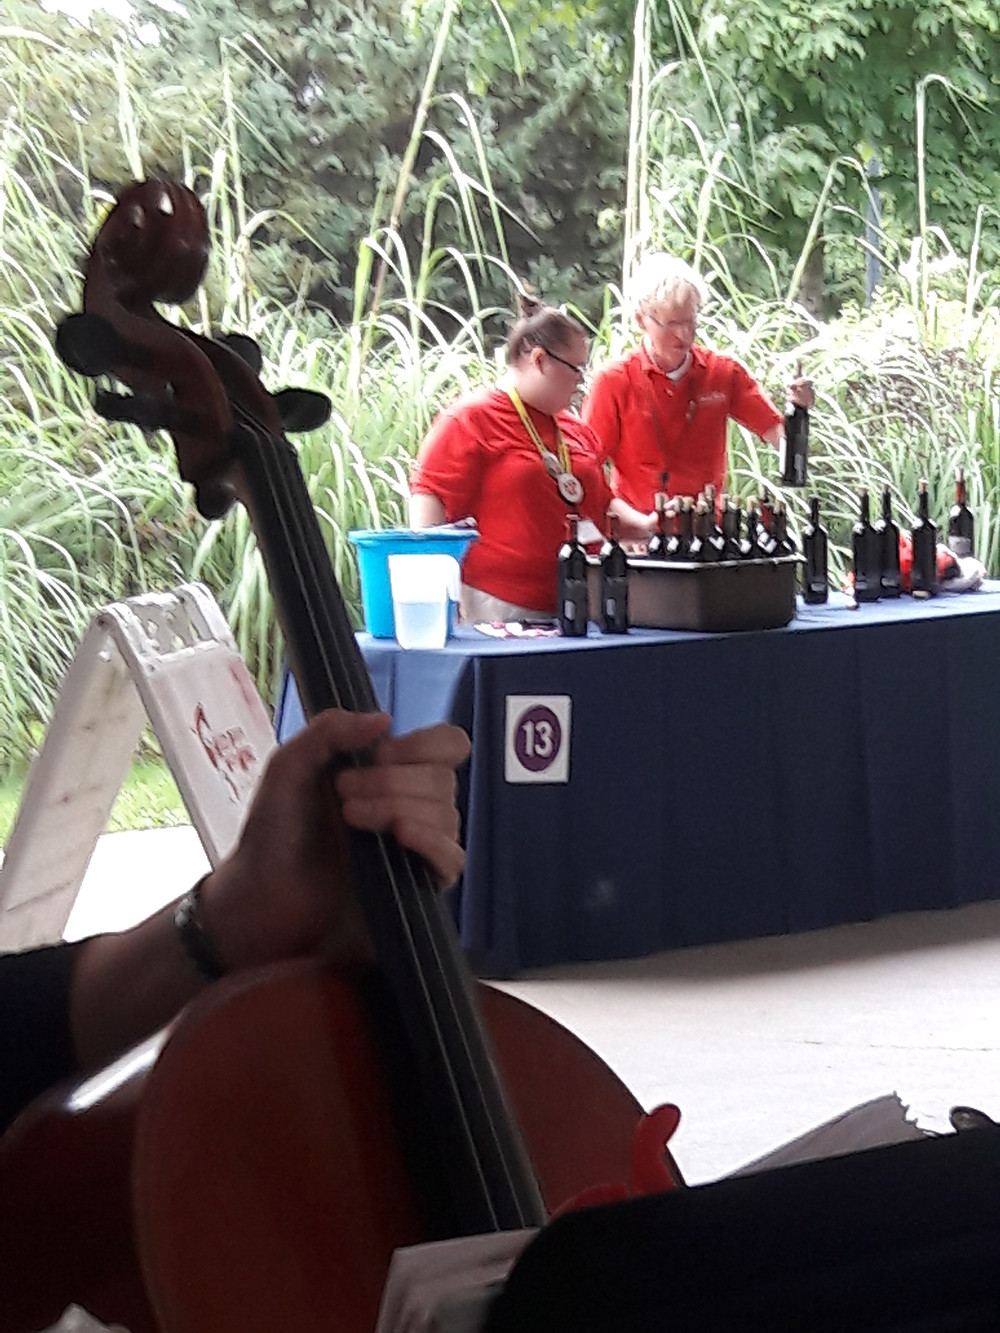 Rondo String Quartet at the Wild Beasts, Wild Wine event at the Detroit Zoo. www.RondoStringQuartet.com